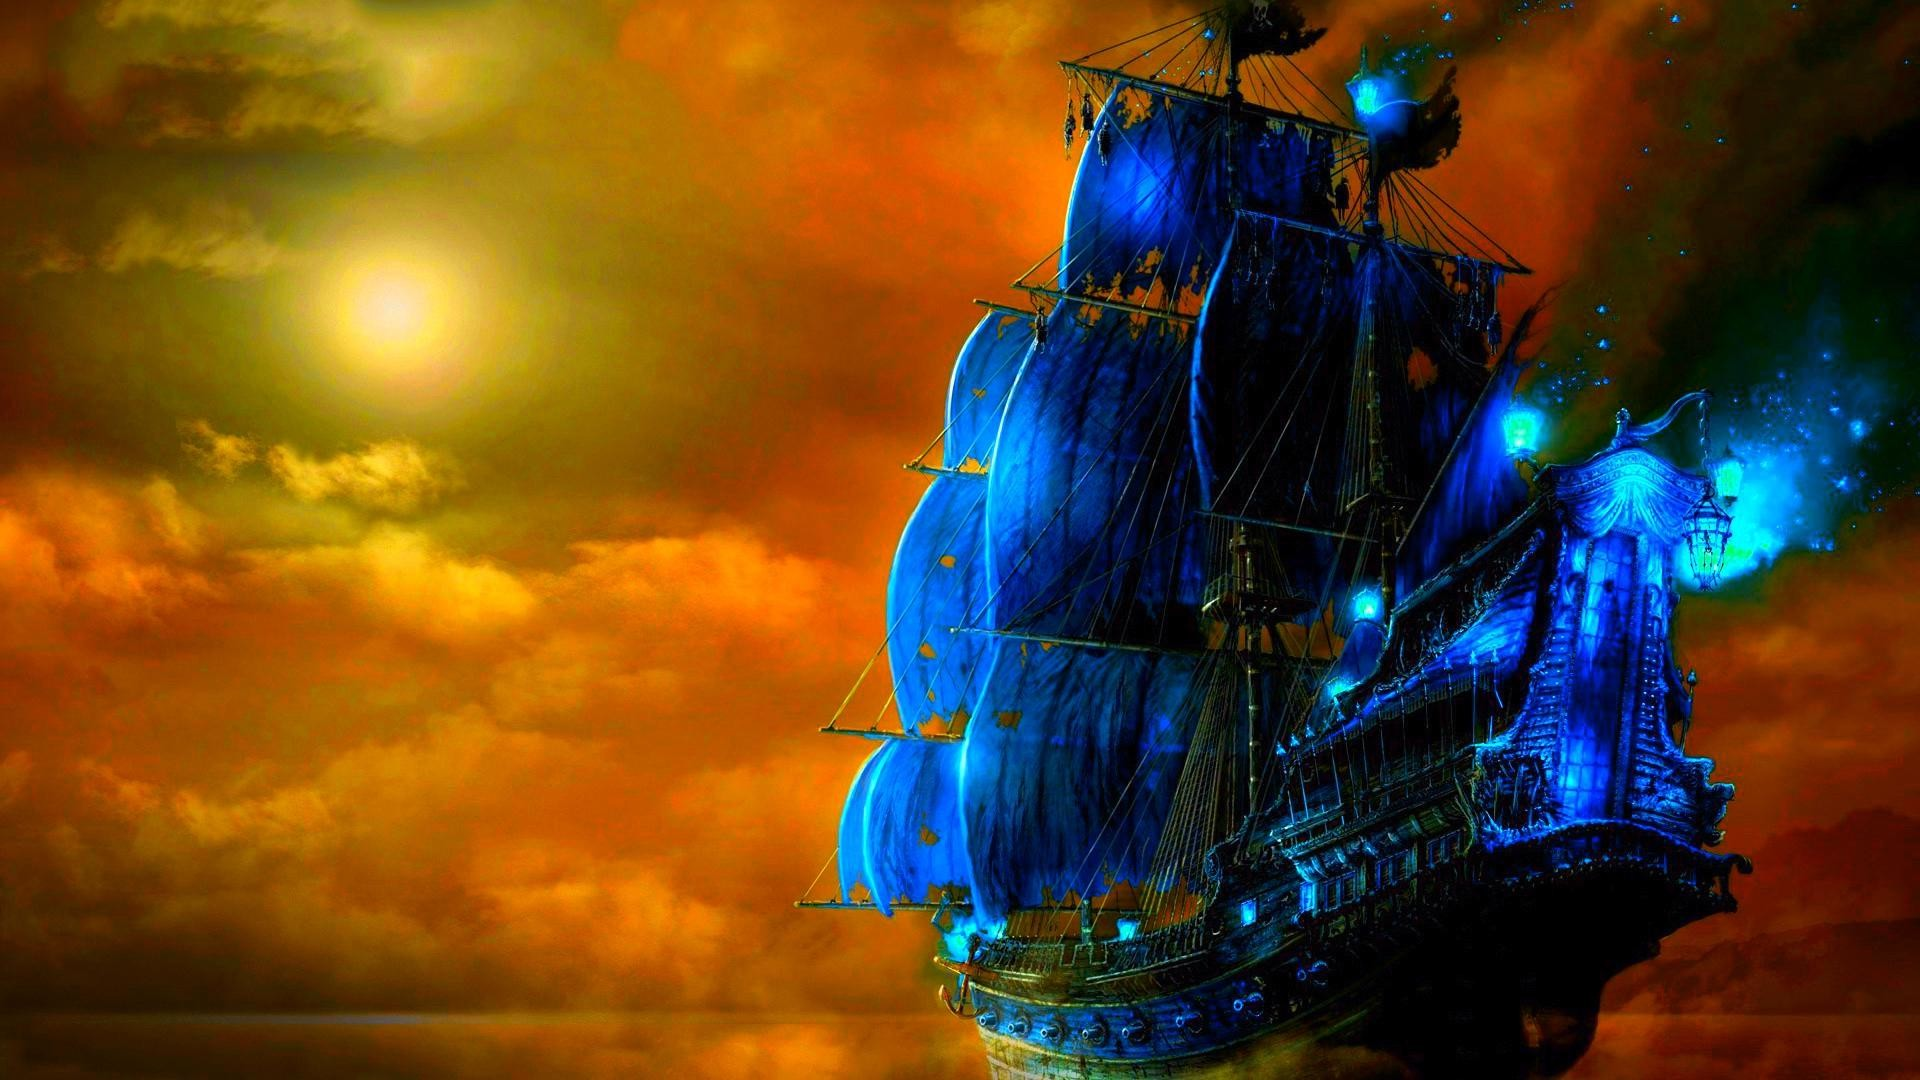 1920x1080 Ship HD Wallpapers Backgrounds Wallpaper 1920×1080 Pirate Ships Wallpapers  (53 Wallpapers) | Adorable Wallpapers | Wallpapers | Pinterest | Pirati, ...